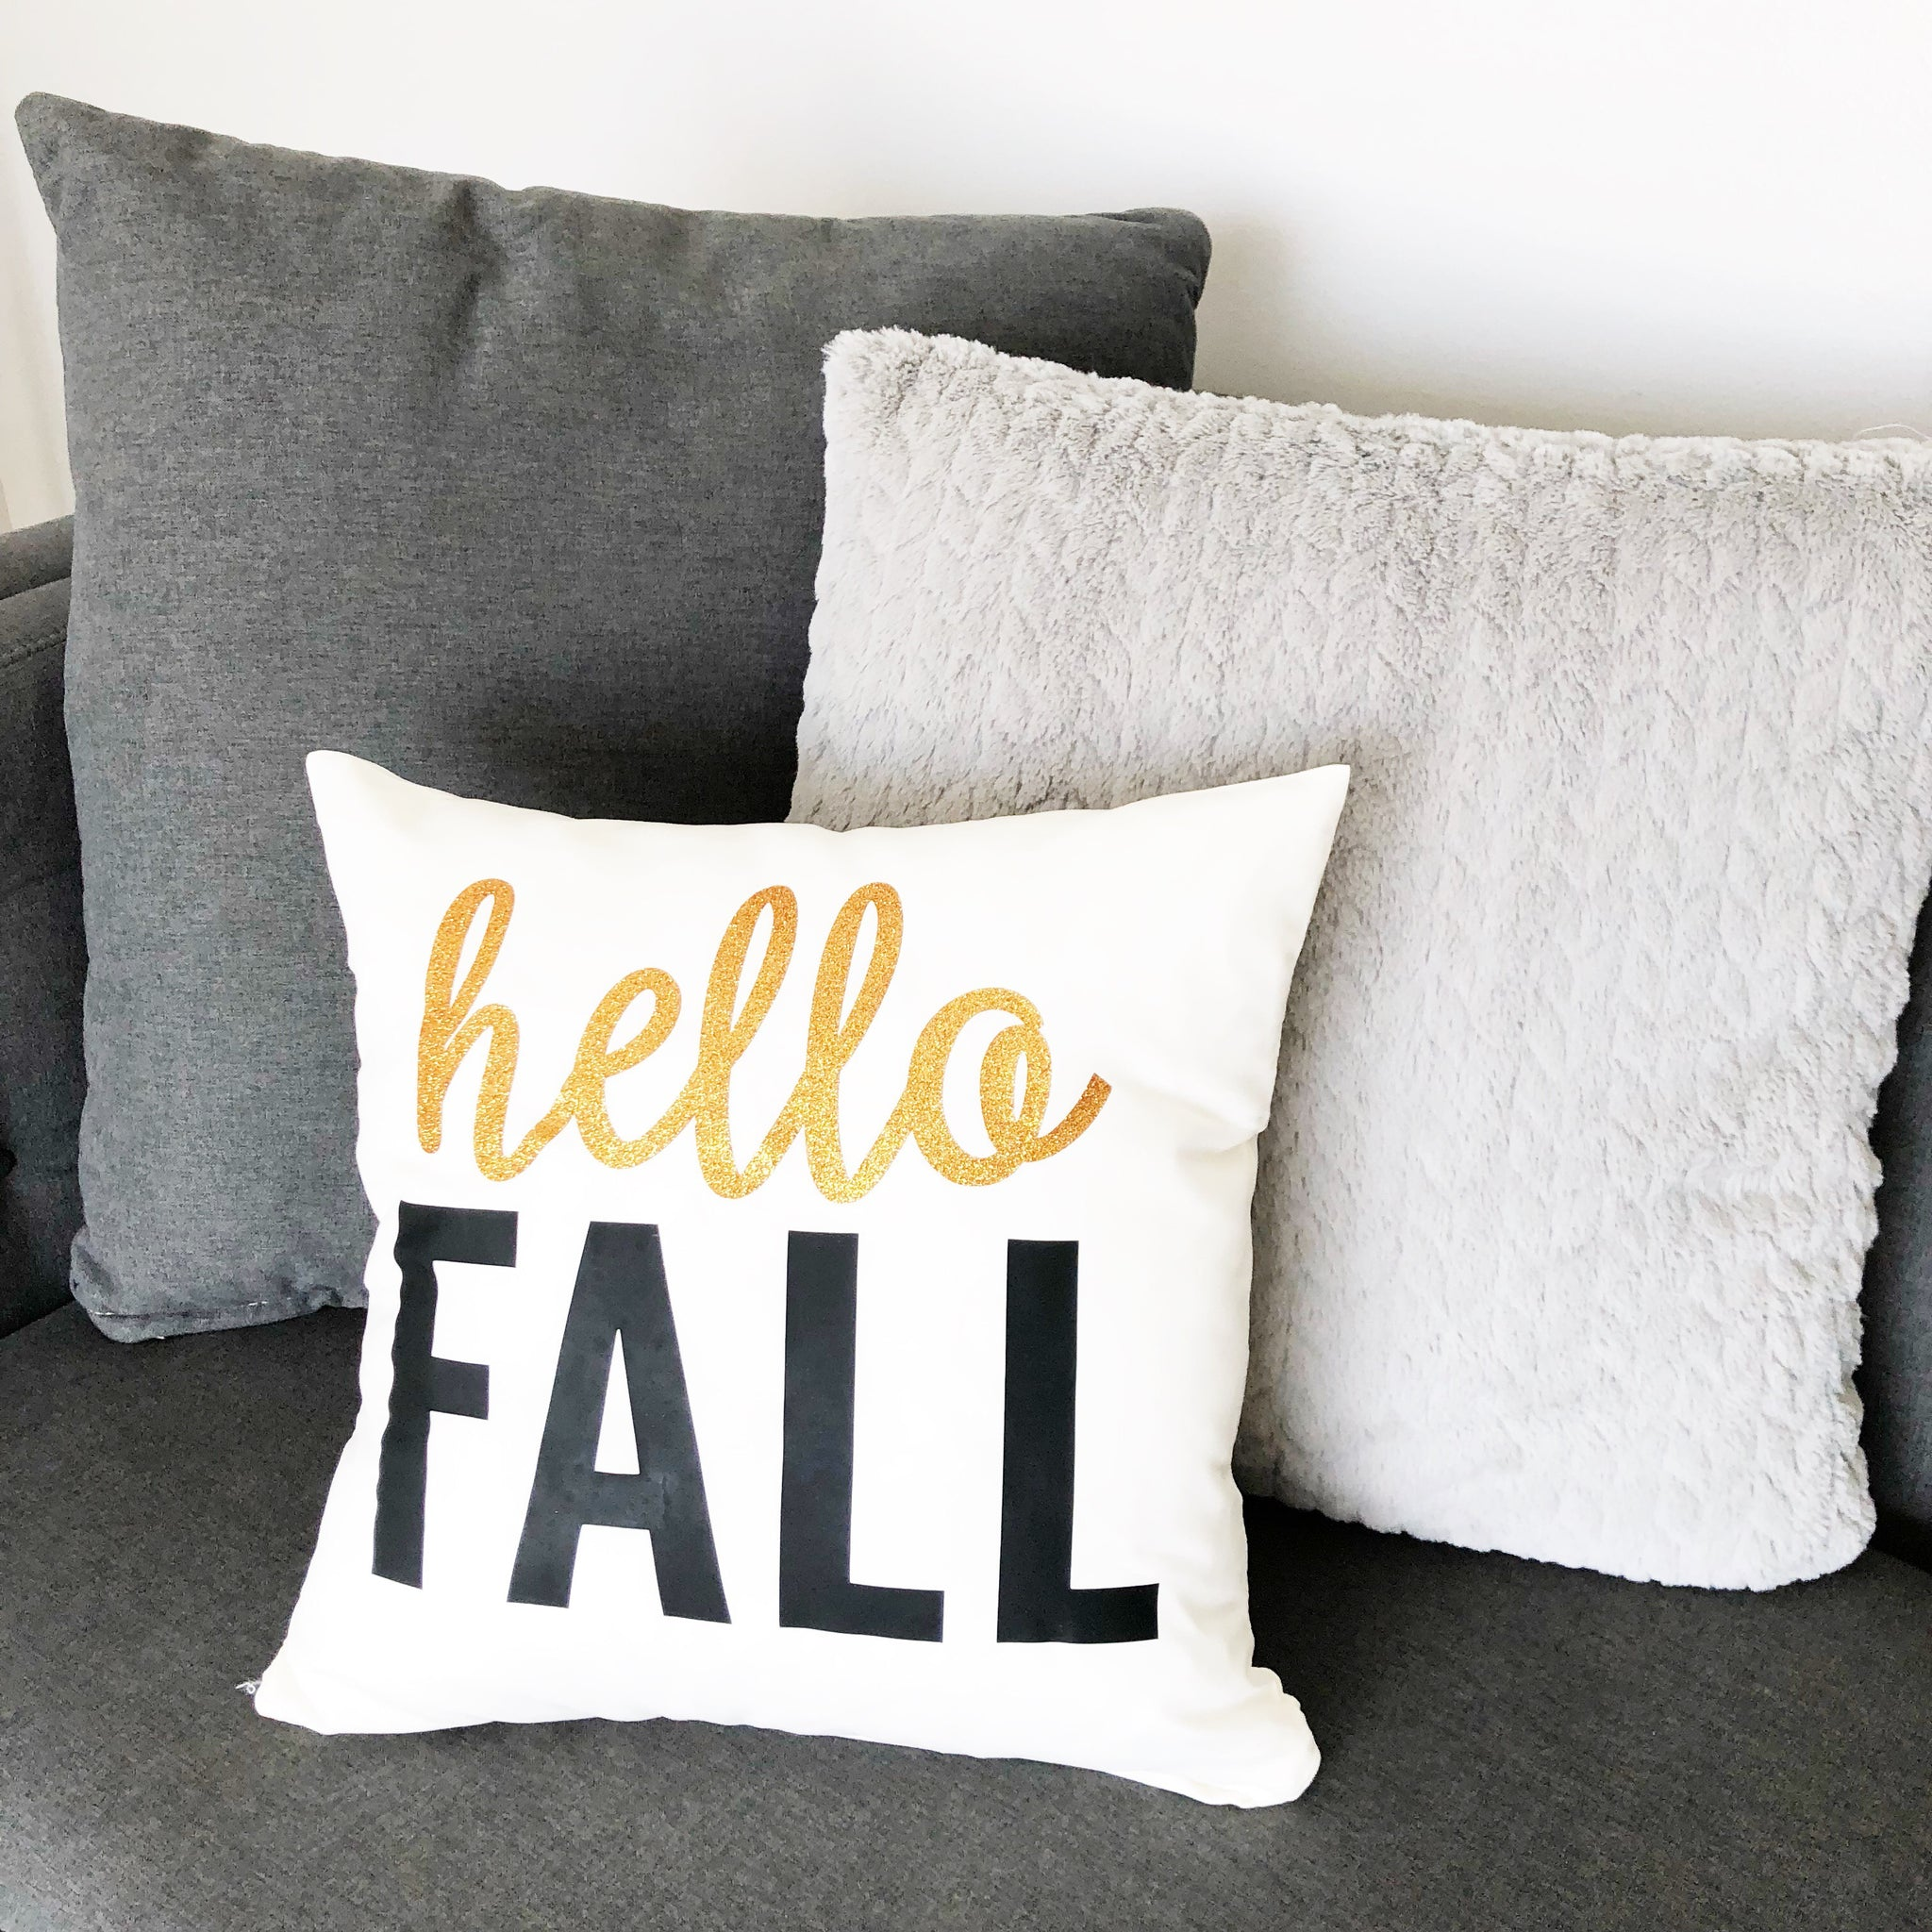 Craftey + Project Silhouette Fall Pillow Iron on main